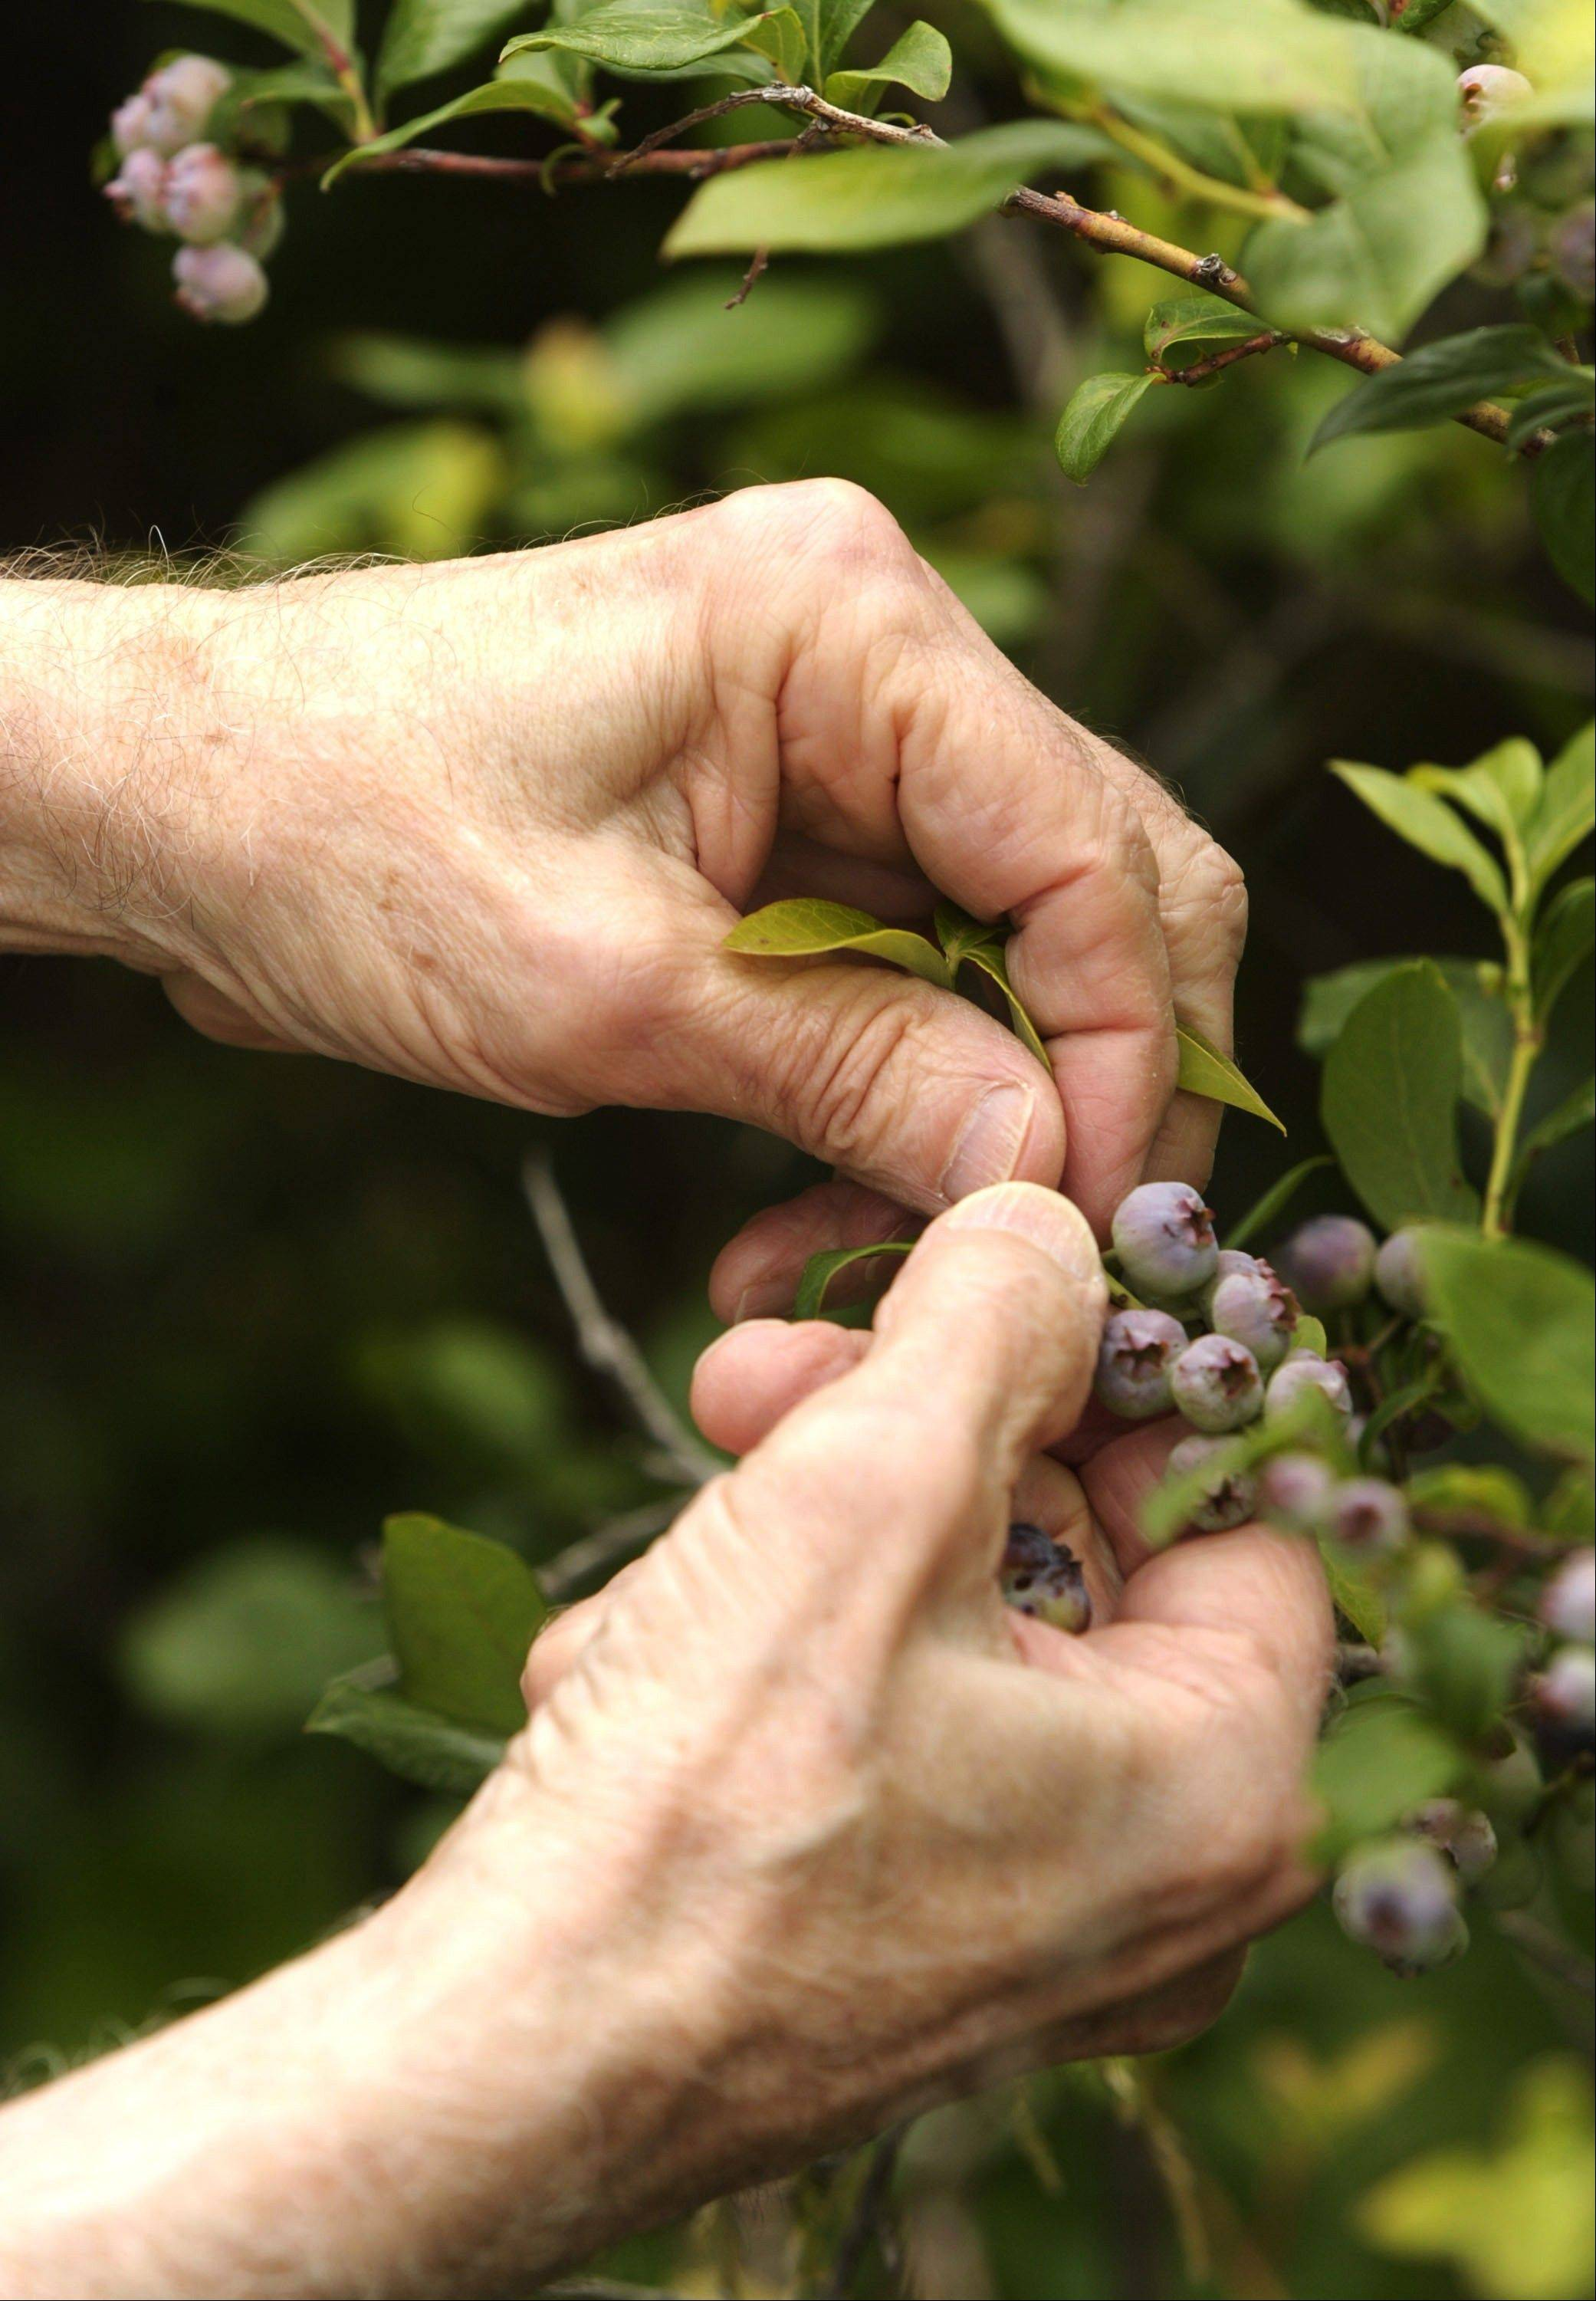 Rick Pontious and his wife, Nancee, plan to close their White Heath berry farm at the end of this season.